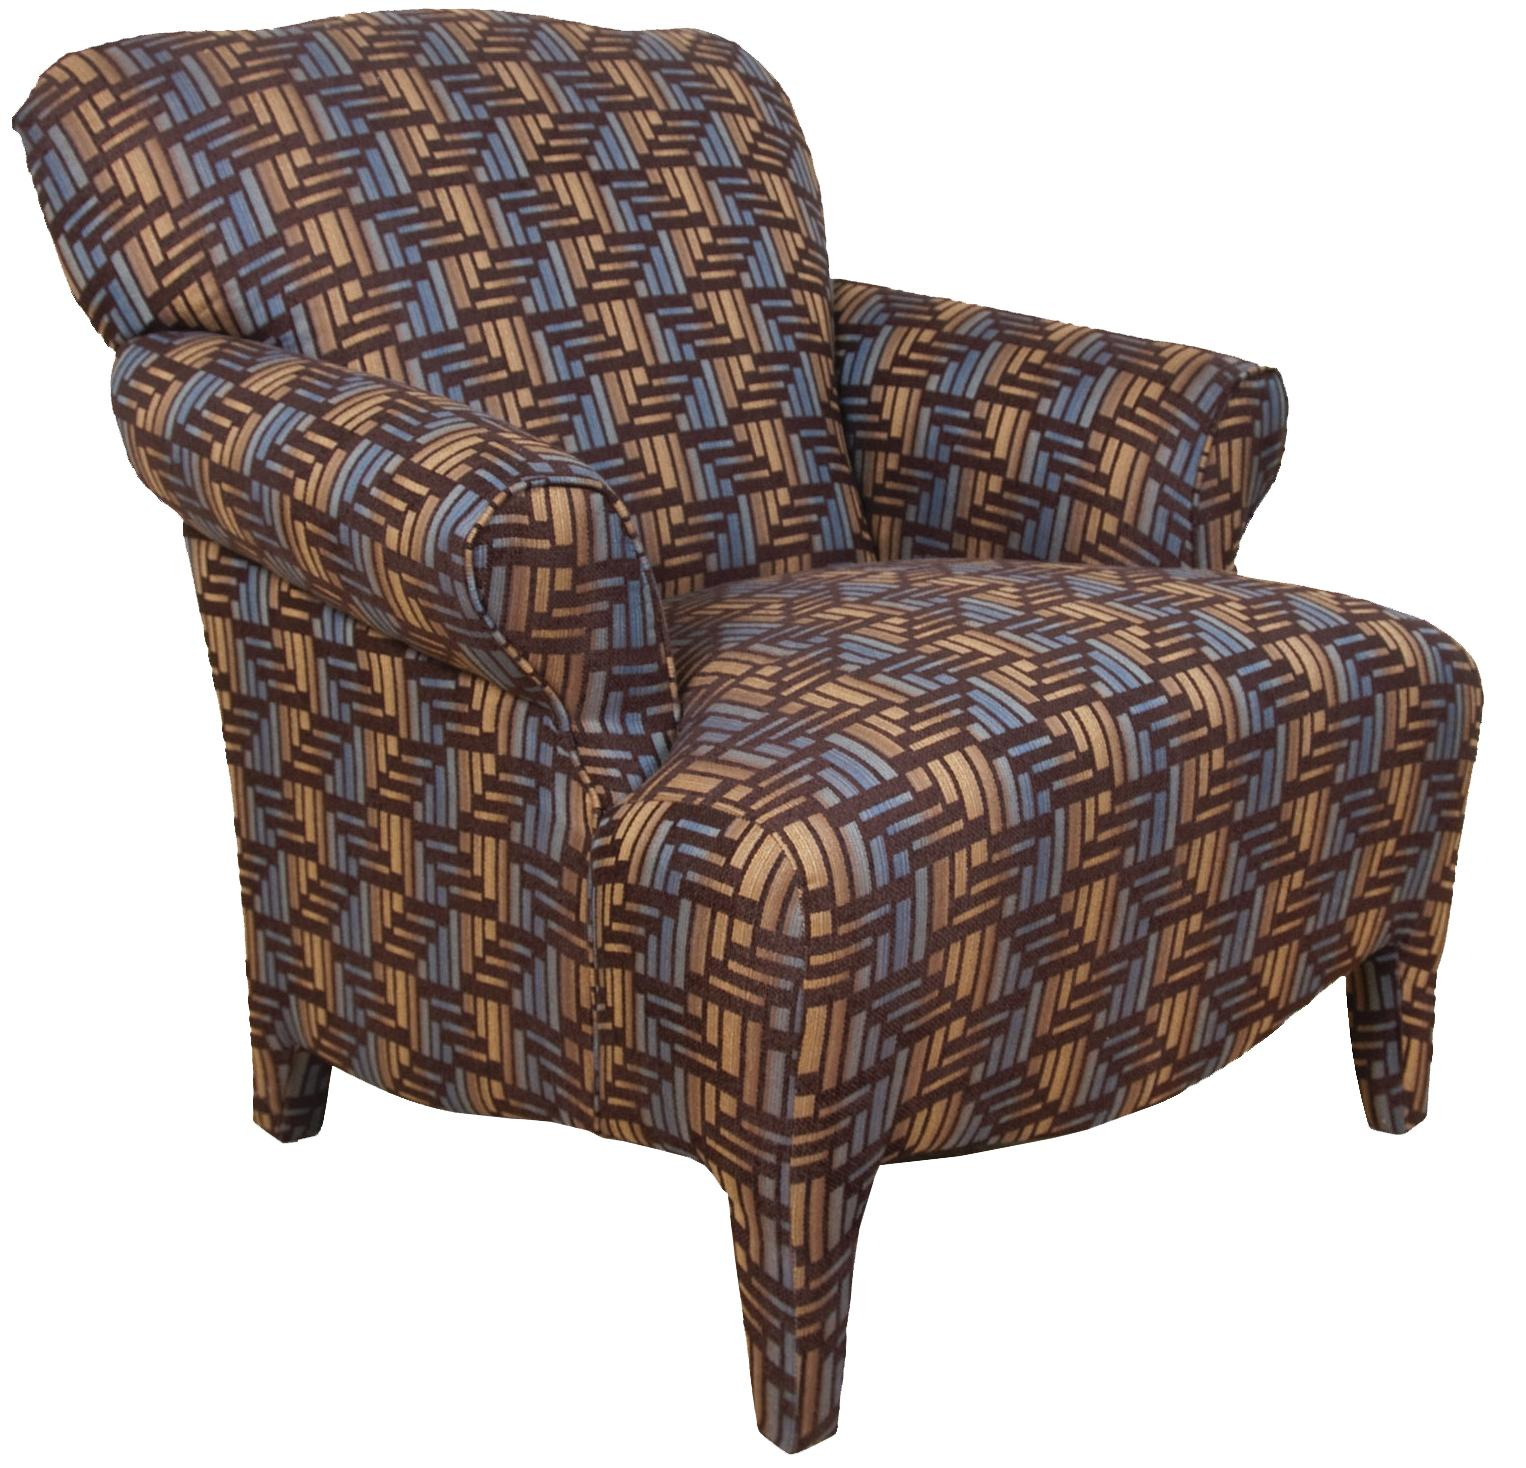 England Summit Upholstered Chair - Item Number: 3854